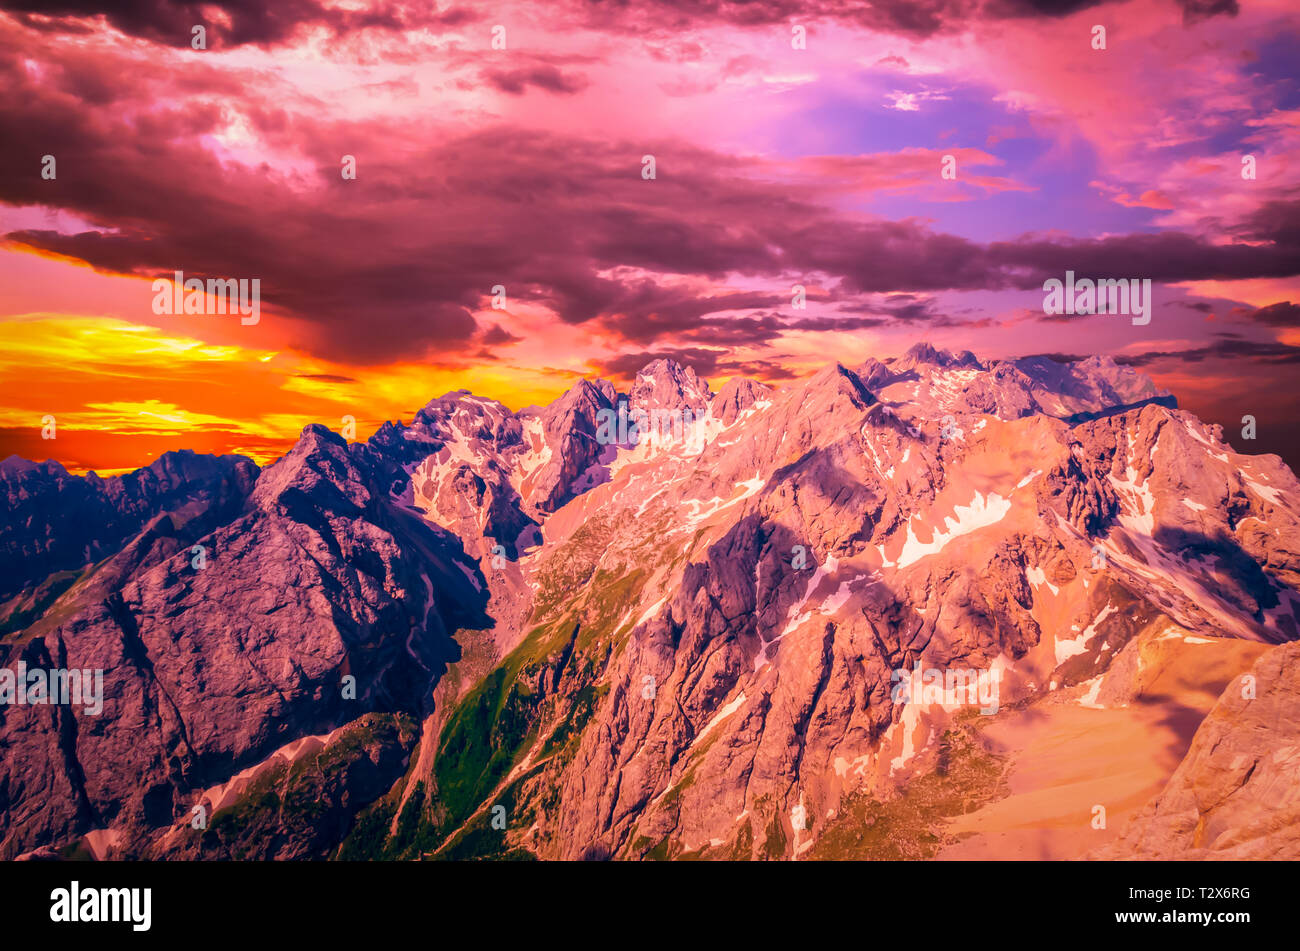 Stunning sunset over Marmolada massif, Dolomiti, Itay. Spectacular view over the Punta Rocca and other peaks in Dolomites mountains - Stock Image